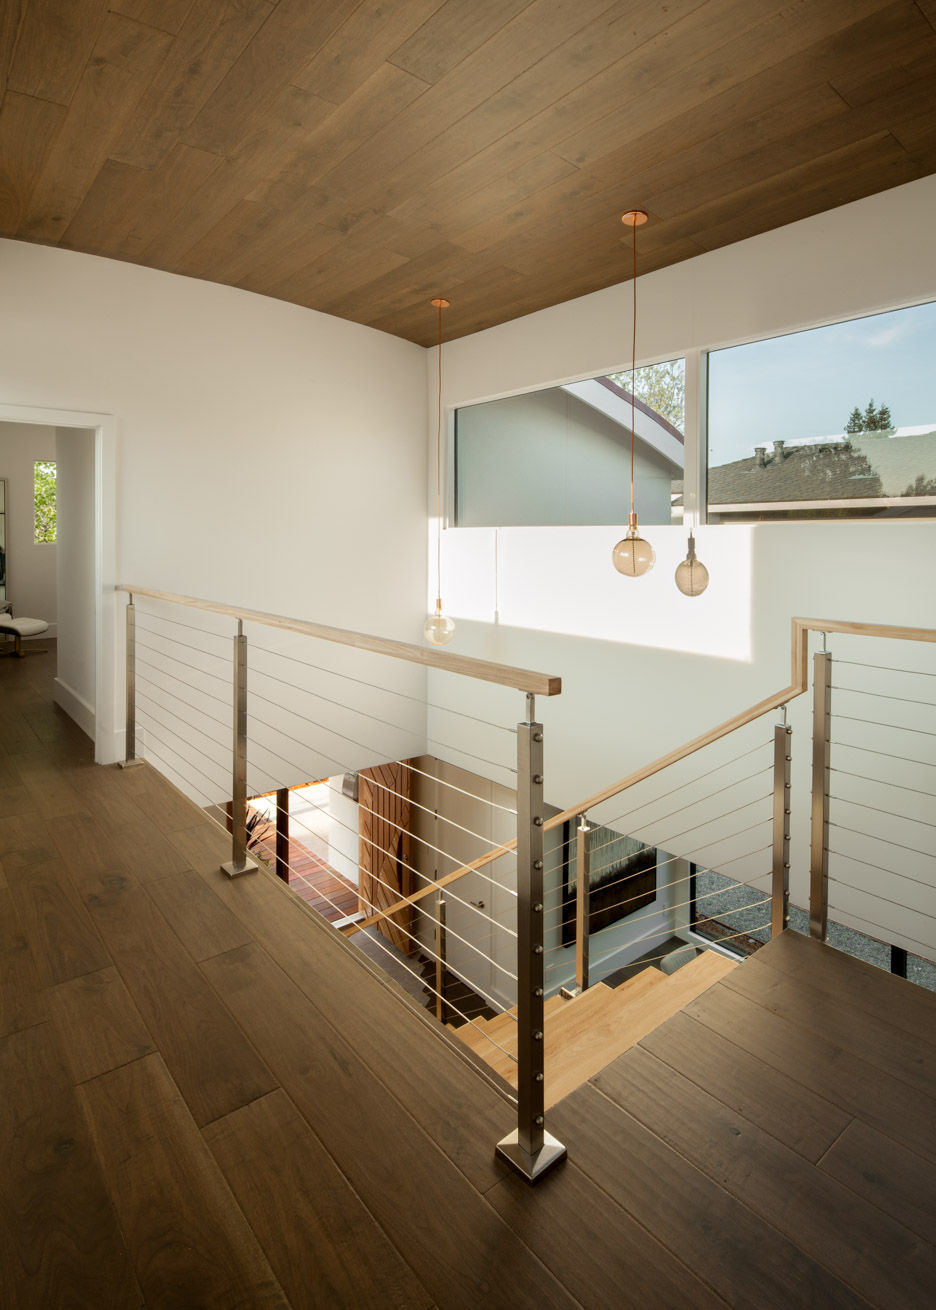 Channing Ave_Palo Alto_Small-14.jpg